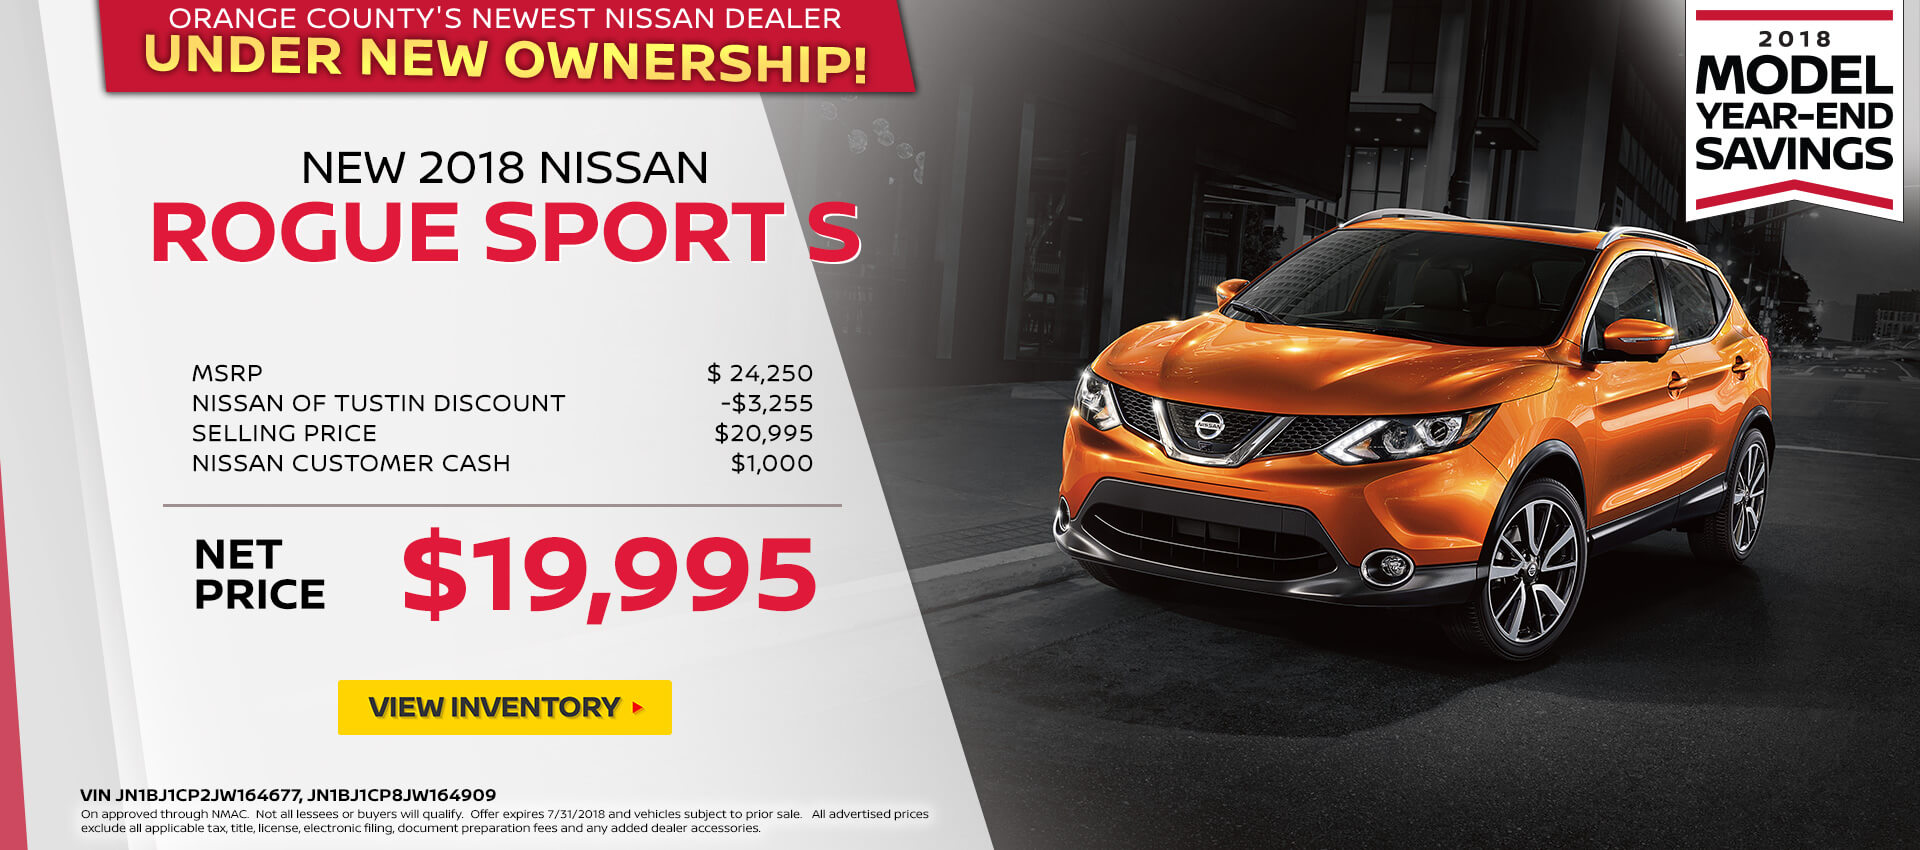 2018 Nissan Rogue Sport Purchase